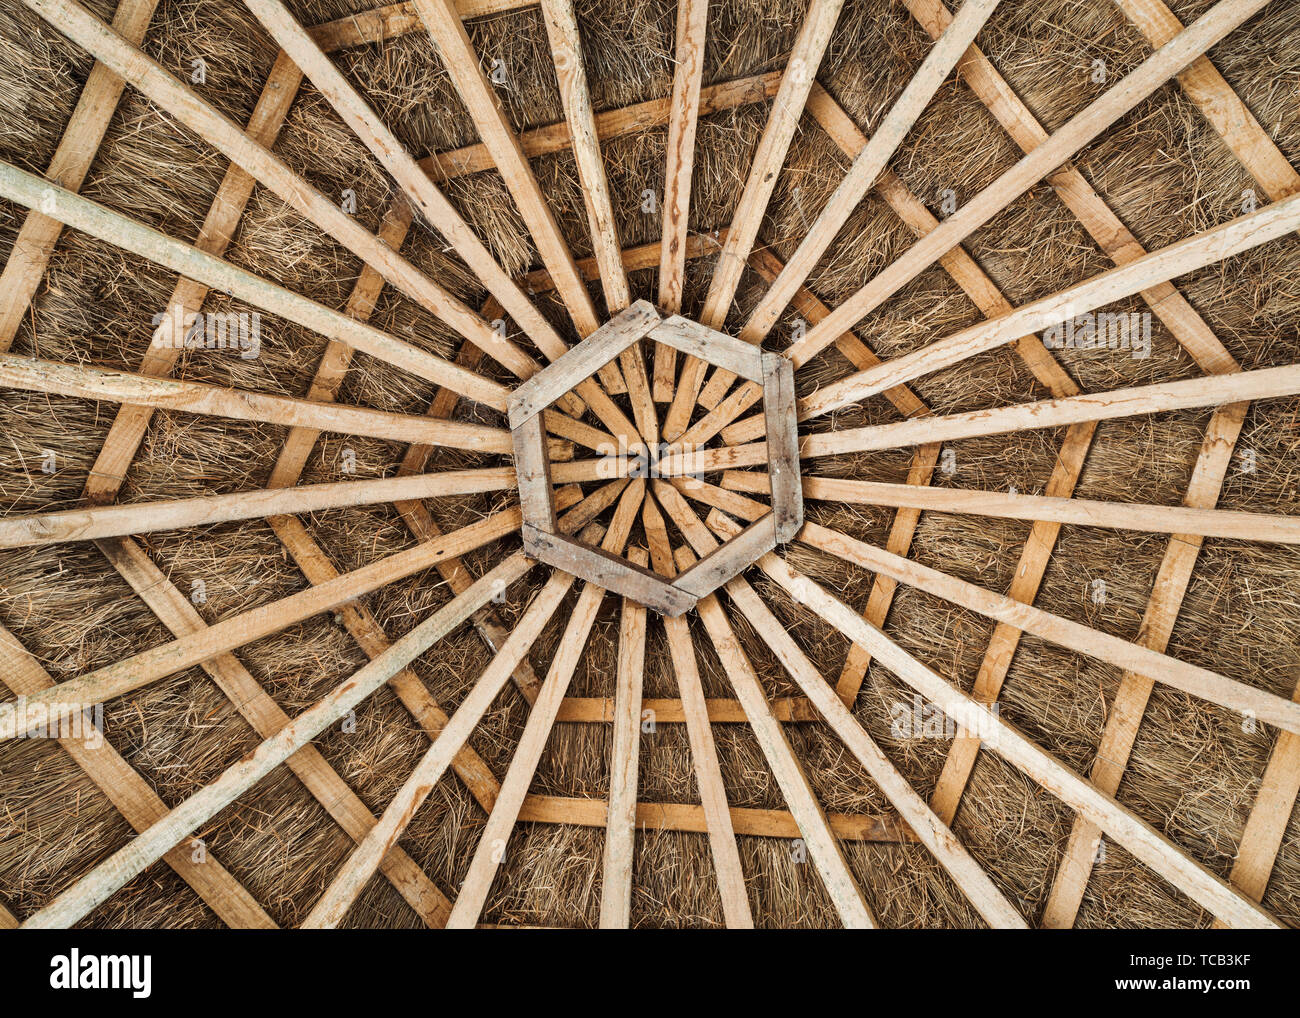 Hexagonal wood frame and thatched roof - Stock Image